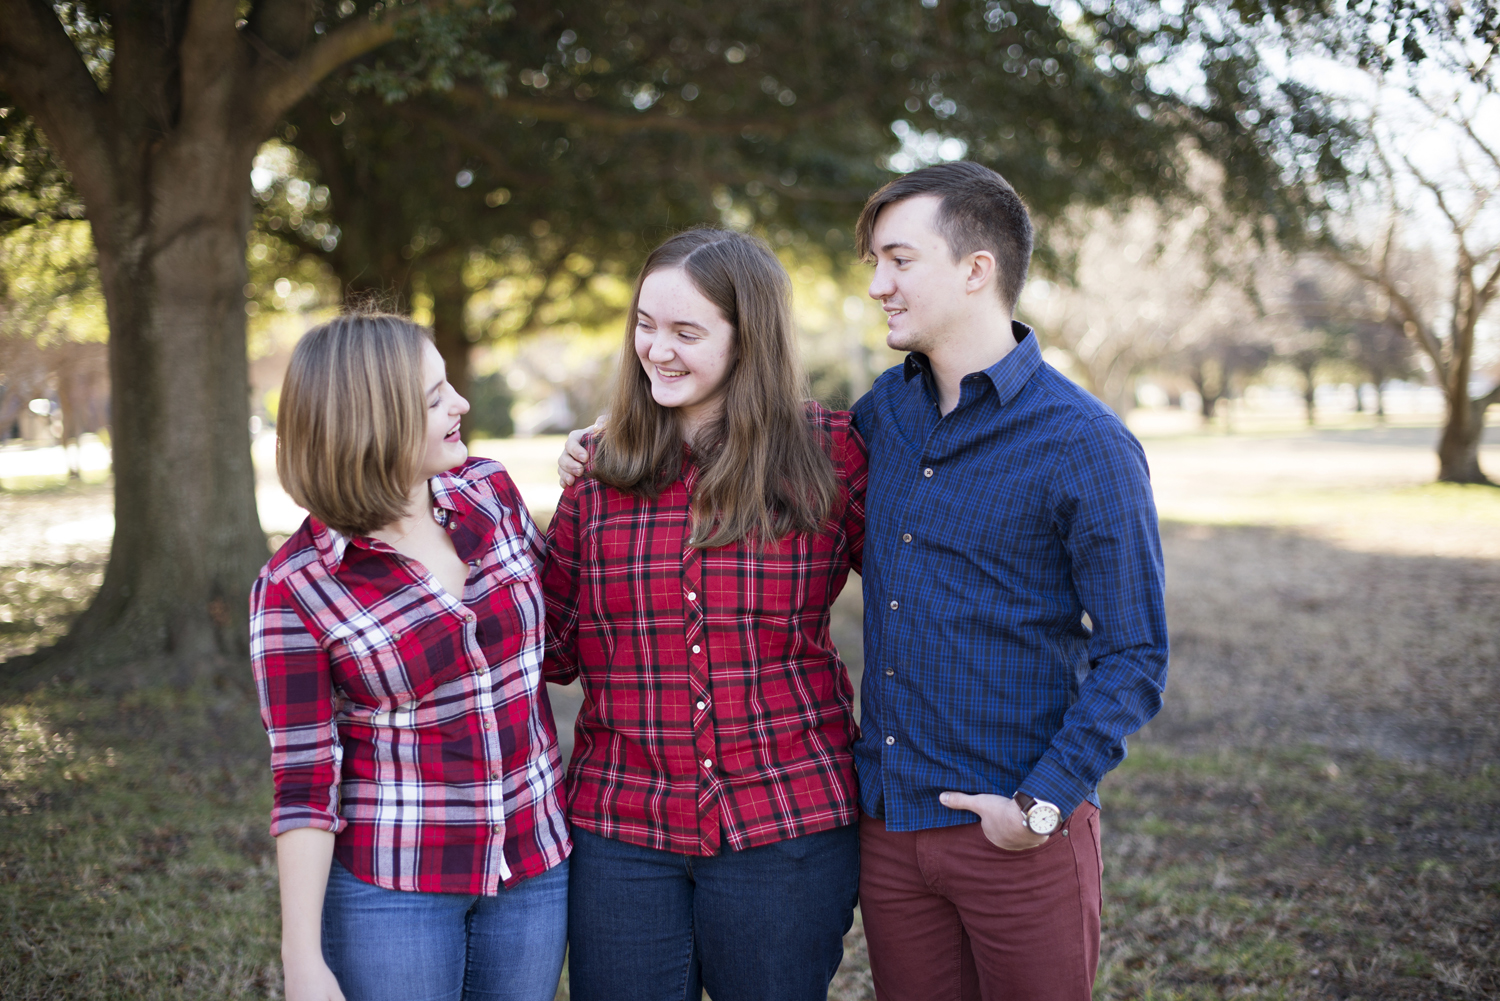 Outfit ideas for sibling pictures